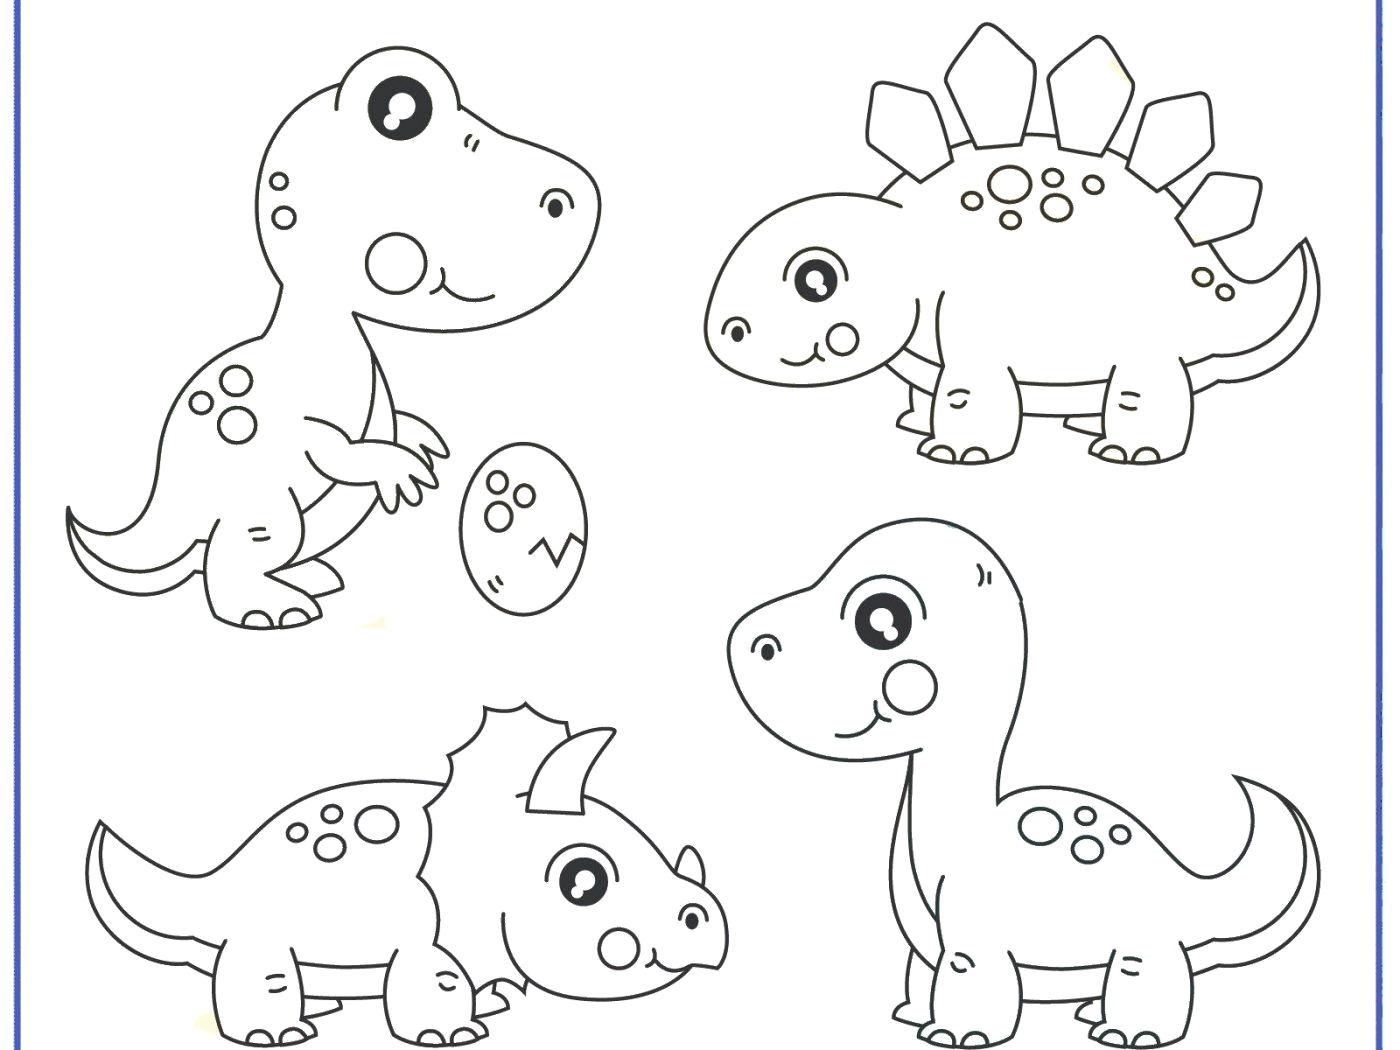 Free Printable Dinosaur Coloring Pages for Preschoolers Dinosaurs Coloring Pages for Preschoolers Coloring and